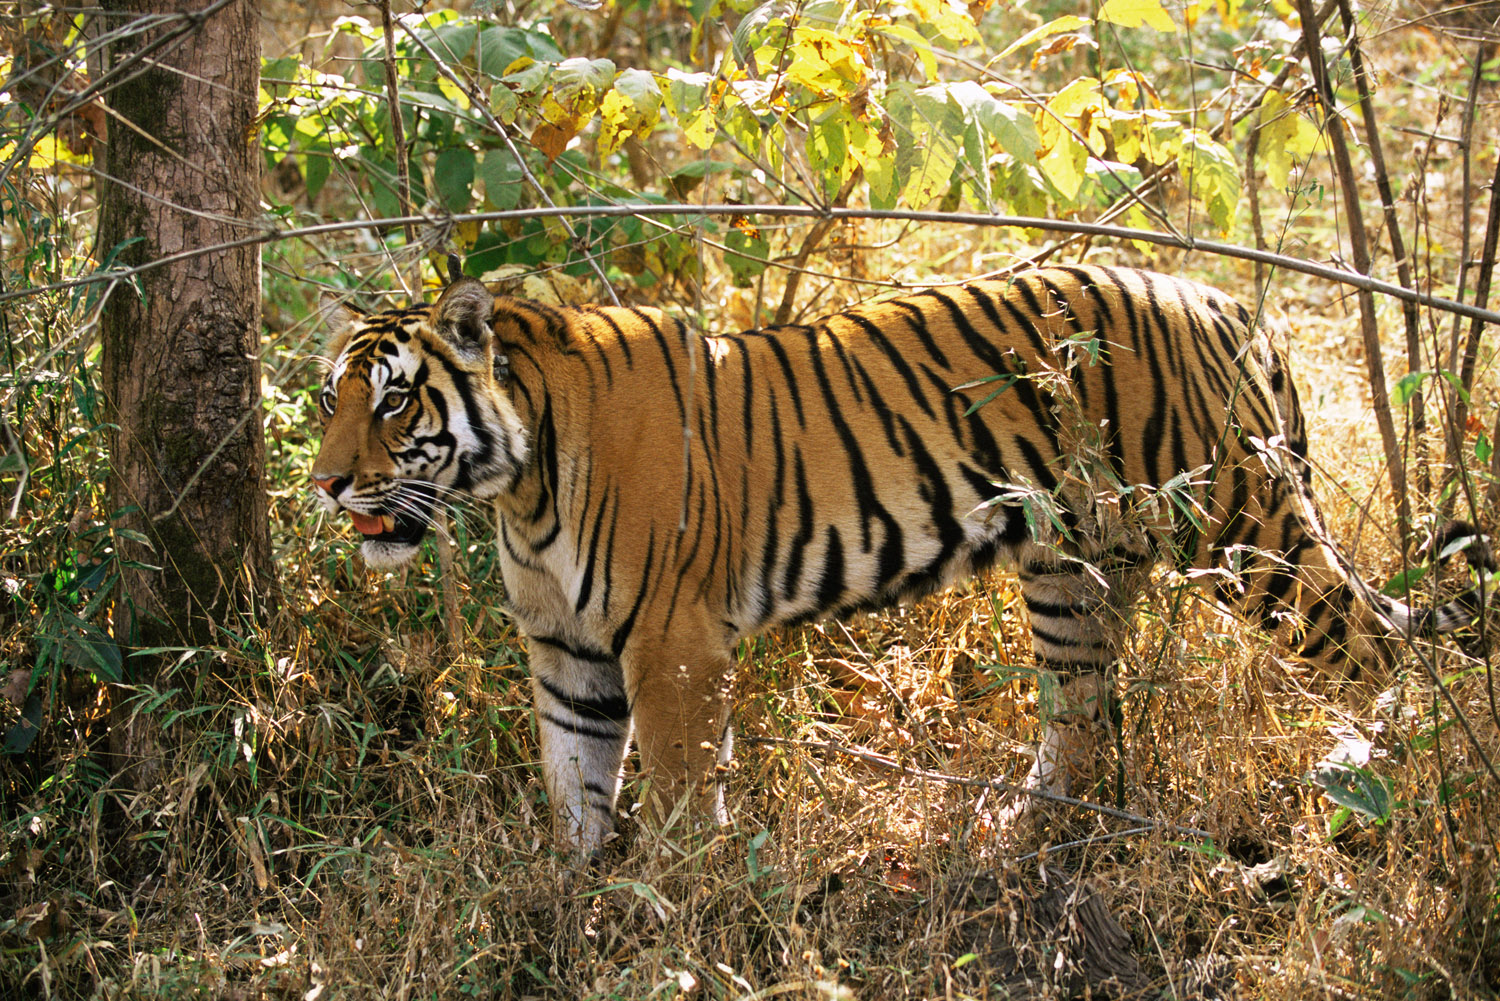 Bengal tiger (with radio collar) in forest, Kanha Tiger Reserve, Madhya Pradesh, India